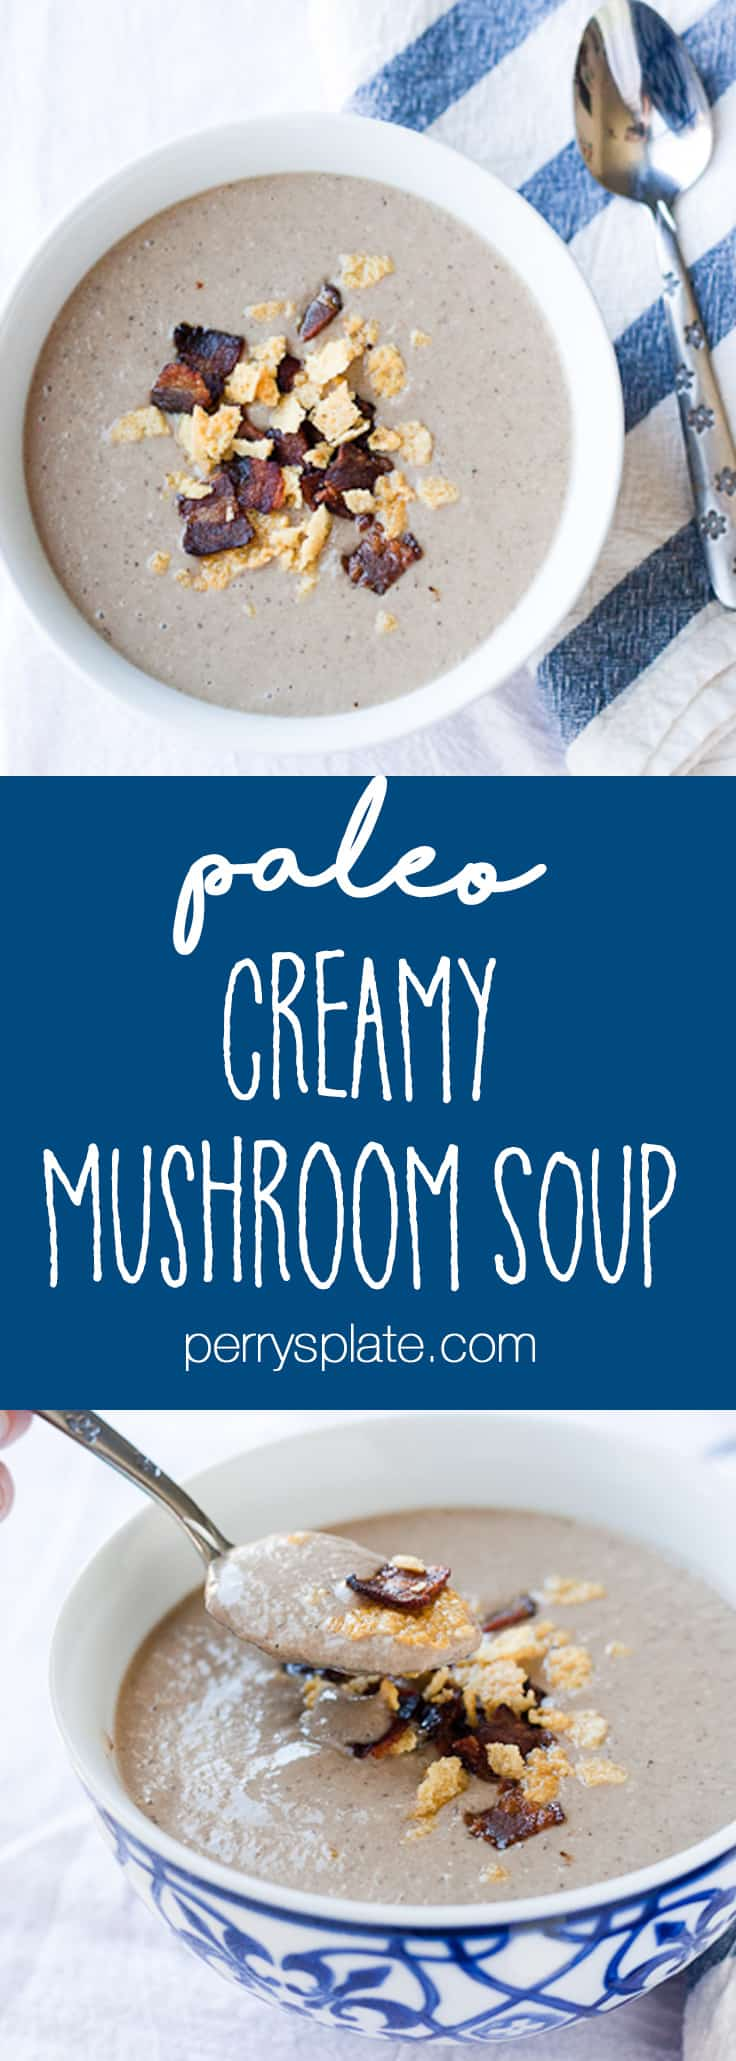 Creamy Paleo Mushroom Soup with Bacon and Cheese Crisps | Dairy-Free recipes | Perrysplate.com